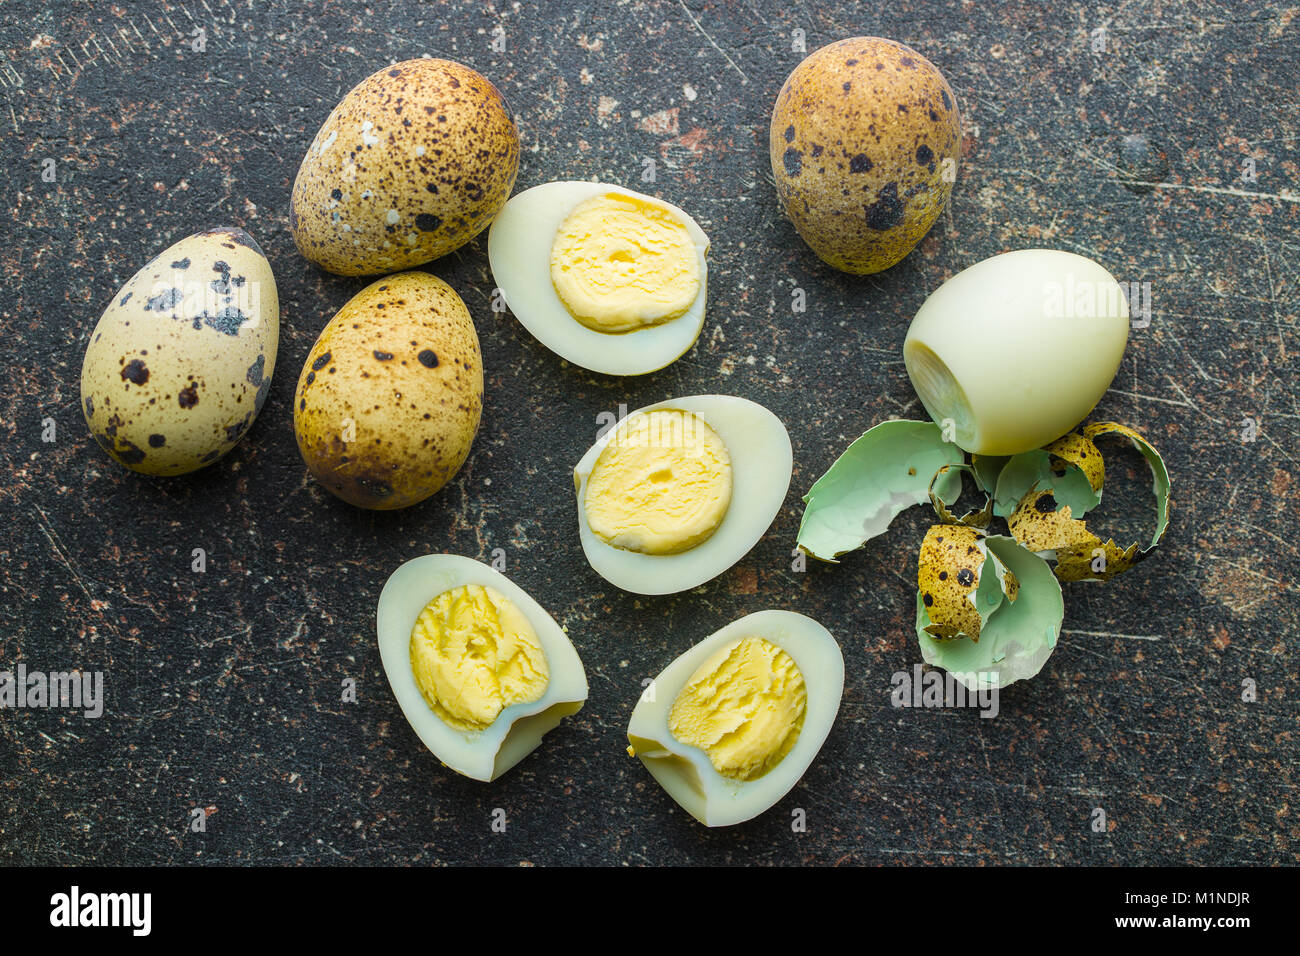 Boiled guail eggs on old kitchen table. - Stock Image